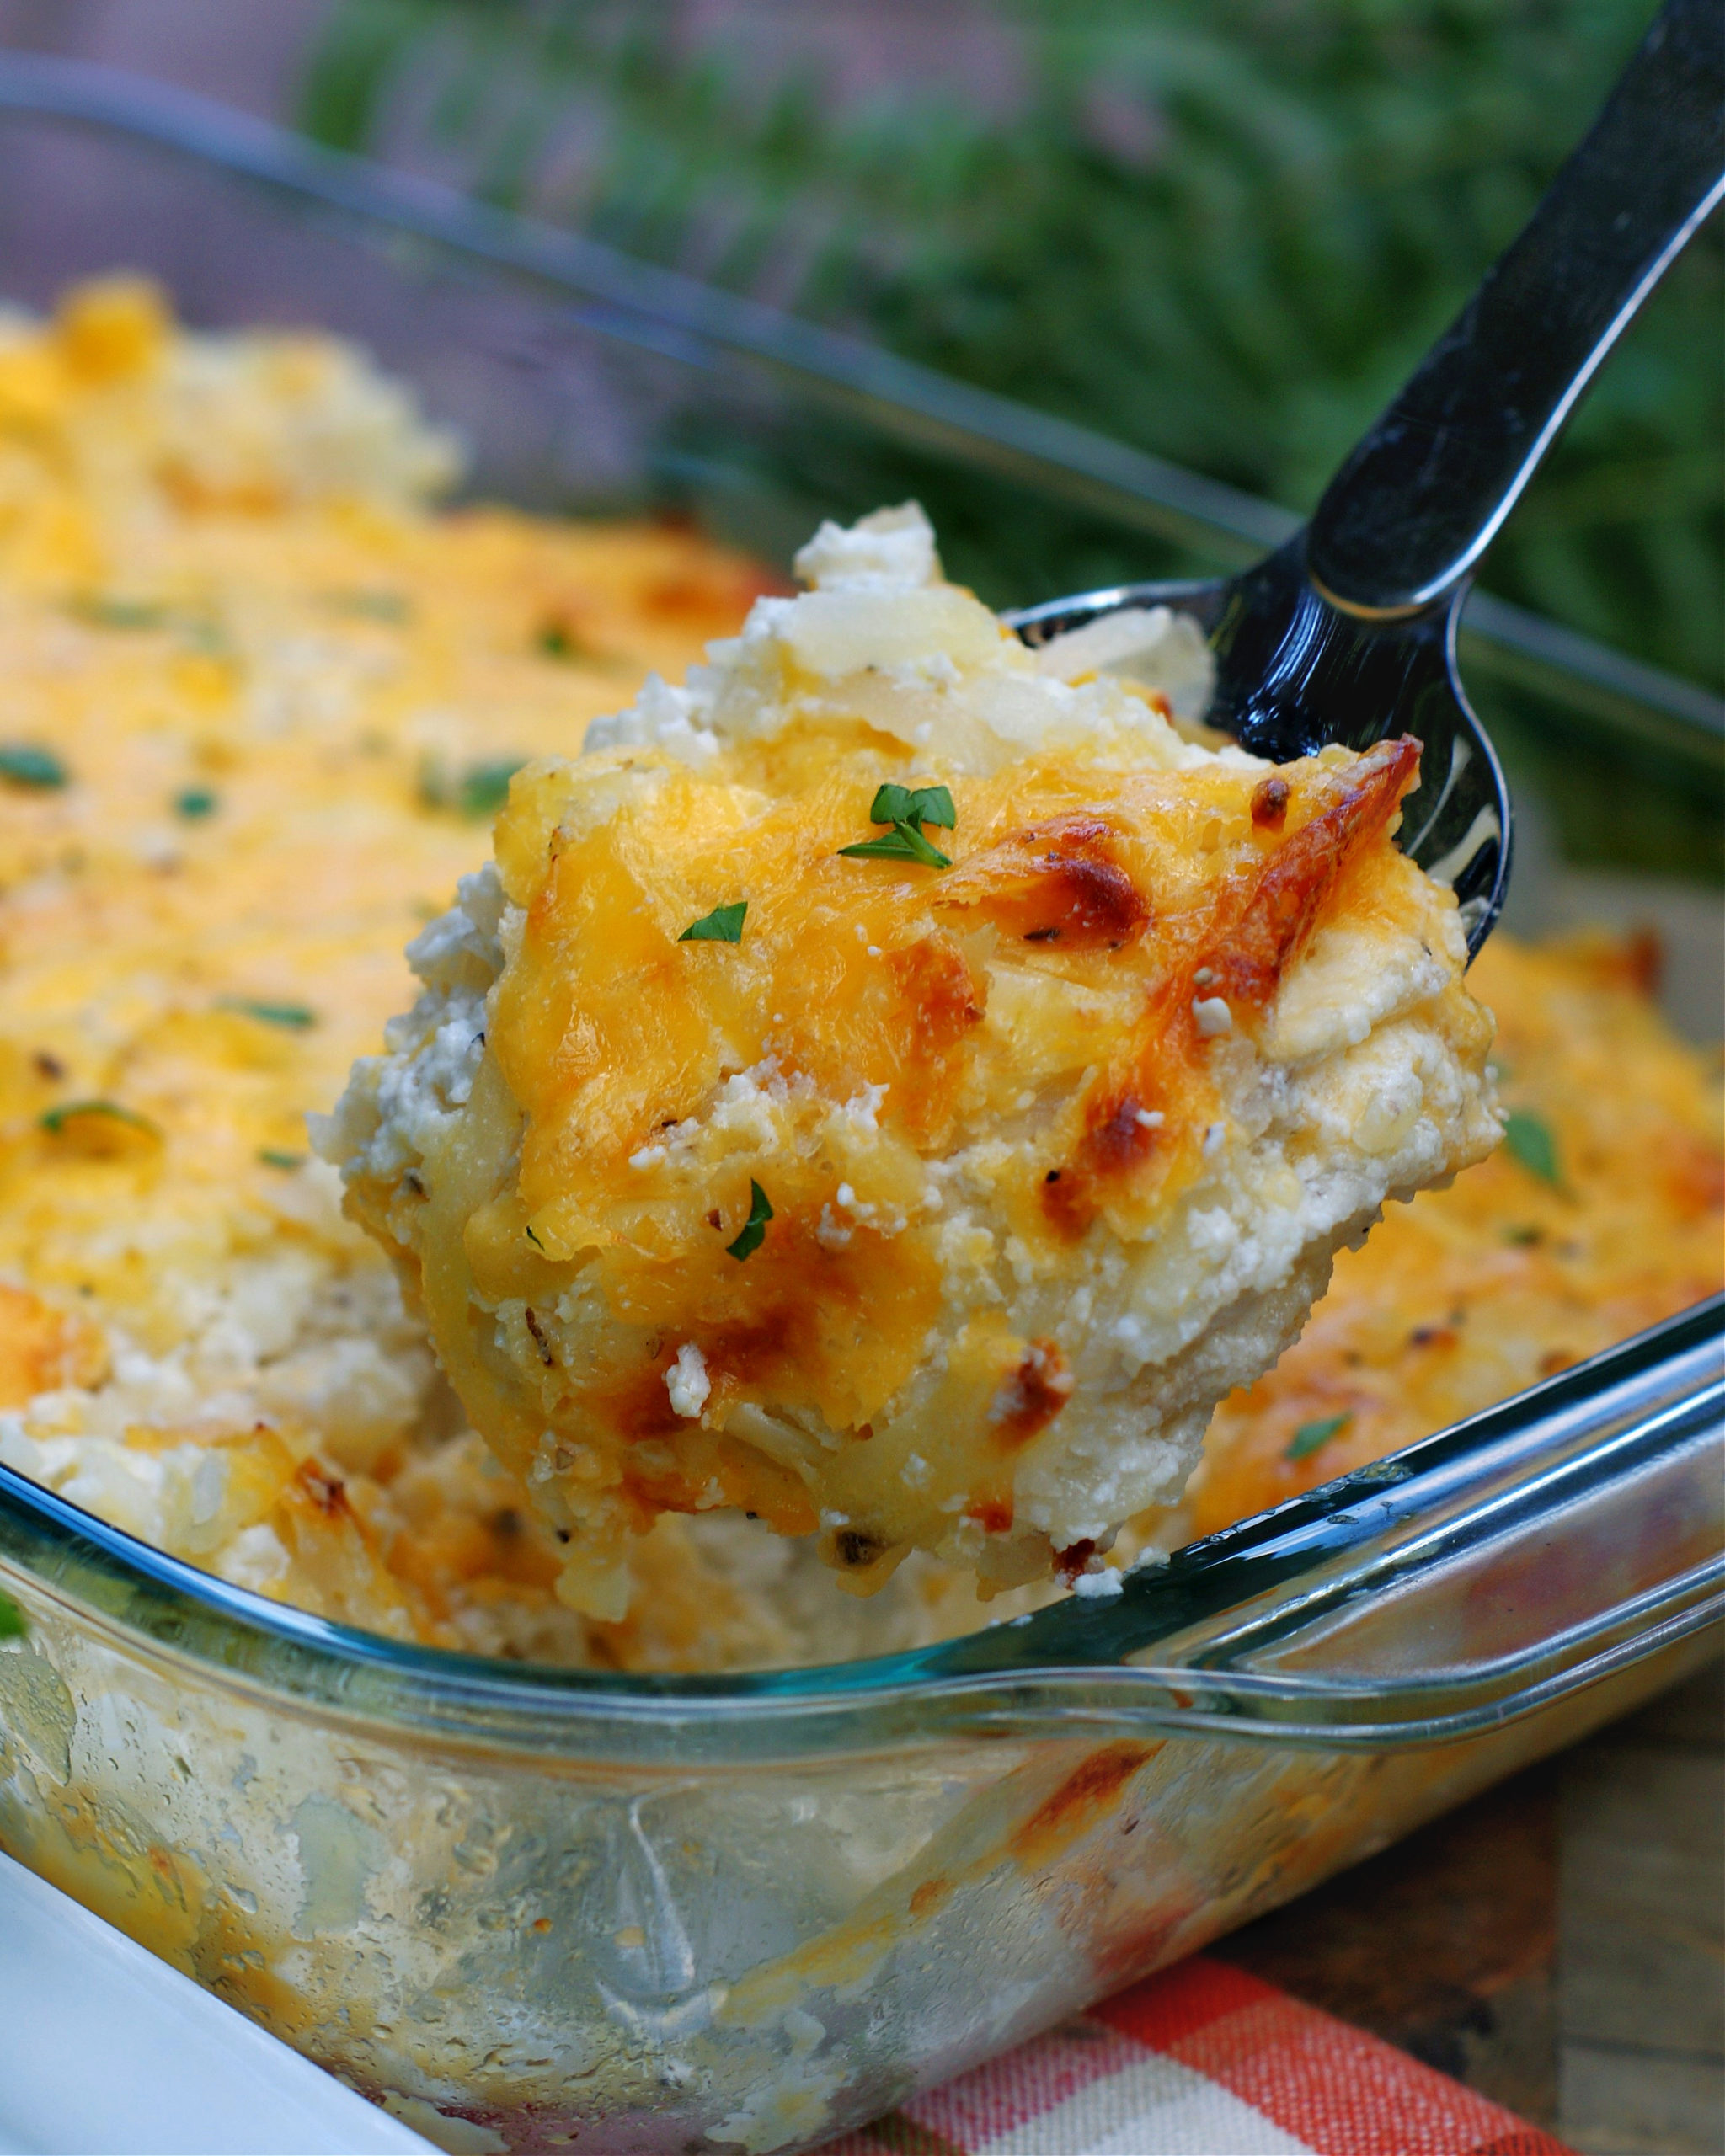 A serving of Cheesy Hashbrown Casserole in a spoon